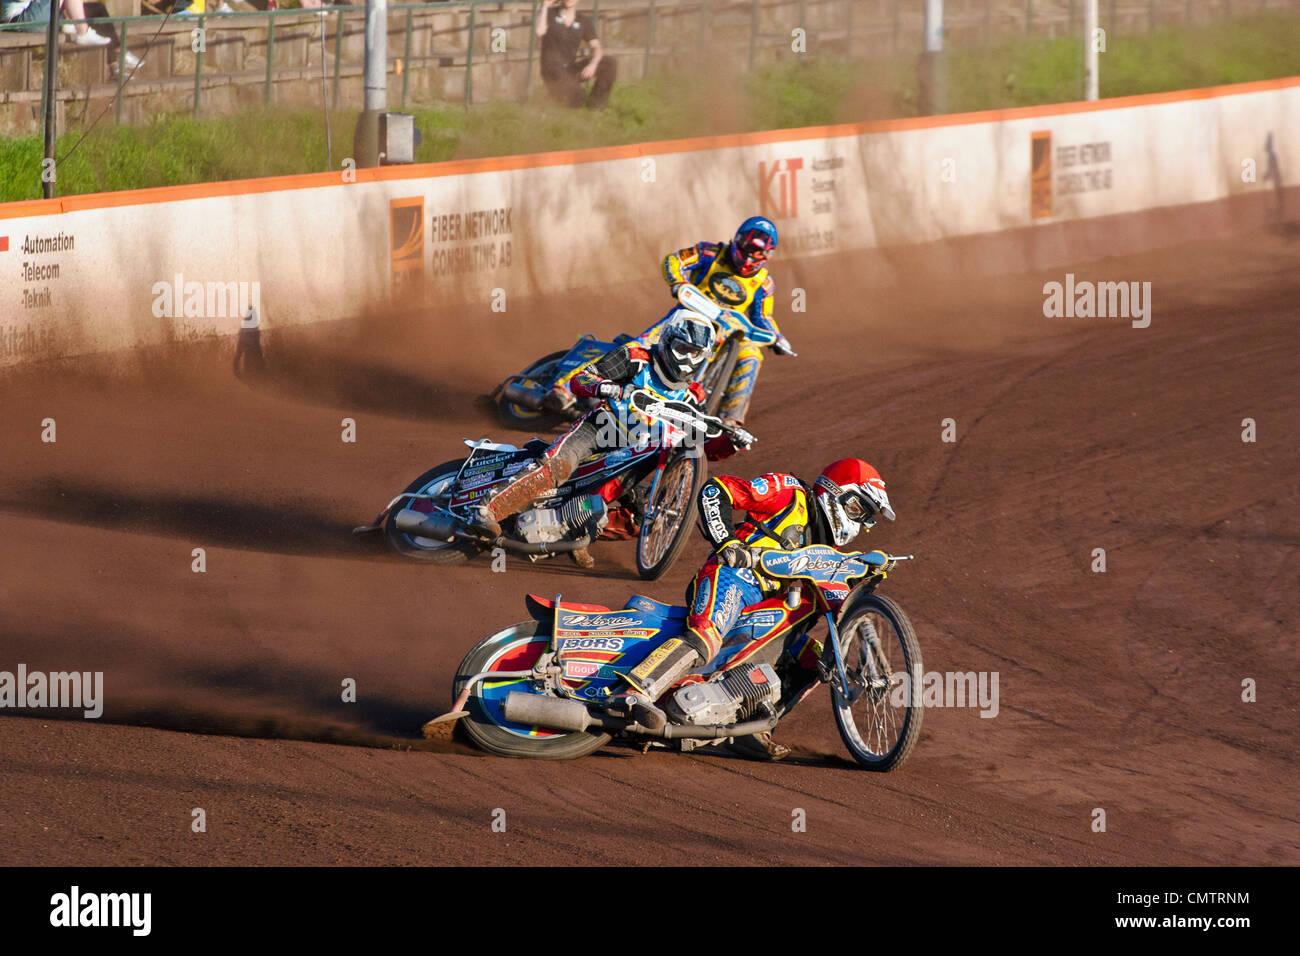 Motorcycle racers taking curve on track - Stock Image